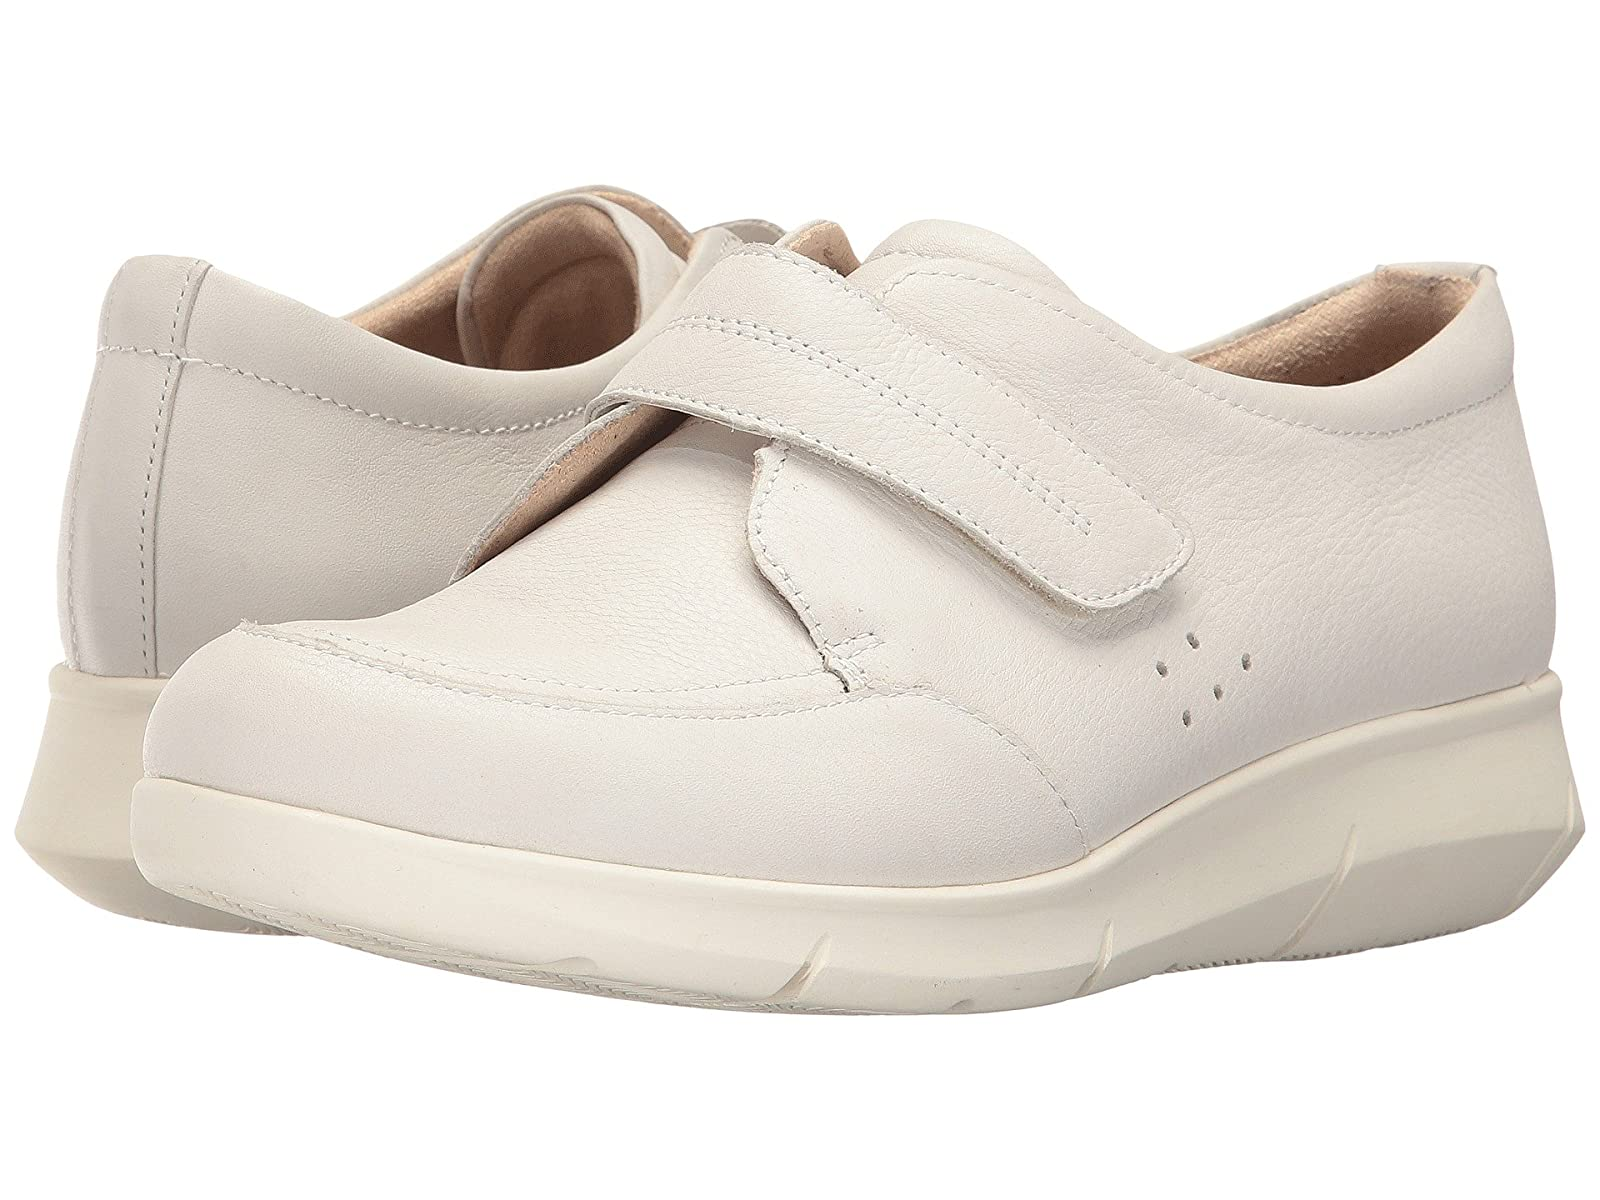 Hush Puppies Believe MardieAtmospheric grades have affordable shoes